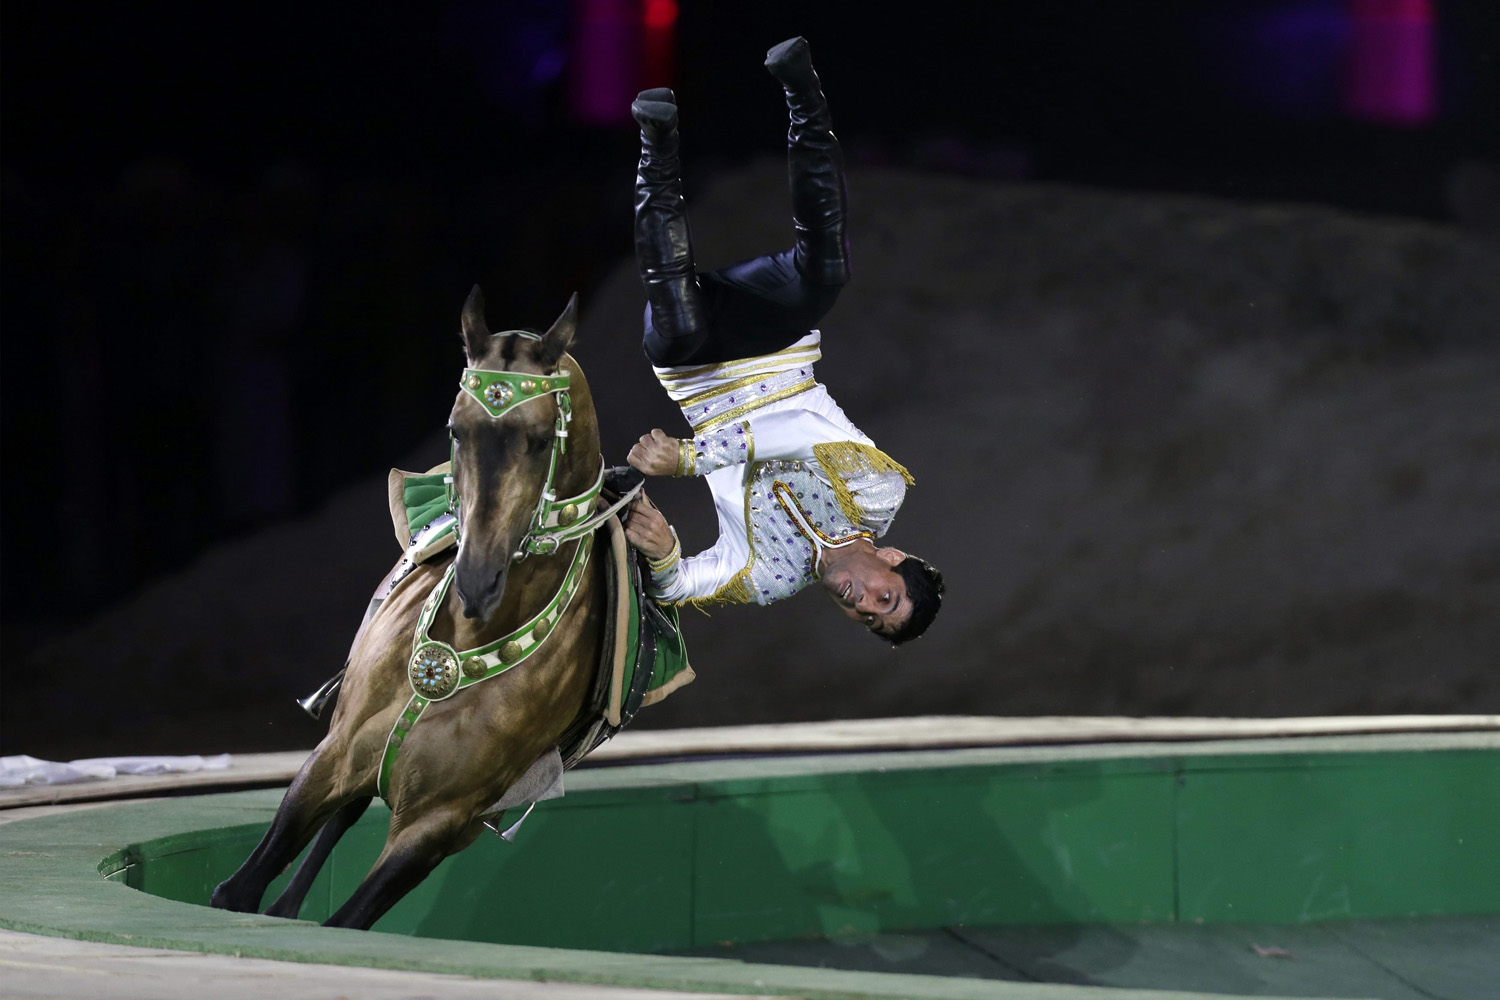 A Turkmenistan man performs on a horse during the opening ceremony of 2014 International Akhal-Teke Horses Association Special Conference and China Horse Culture Festival at Forbidden City, in Beijing, China, May 12, 2014.